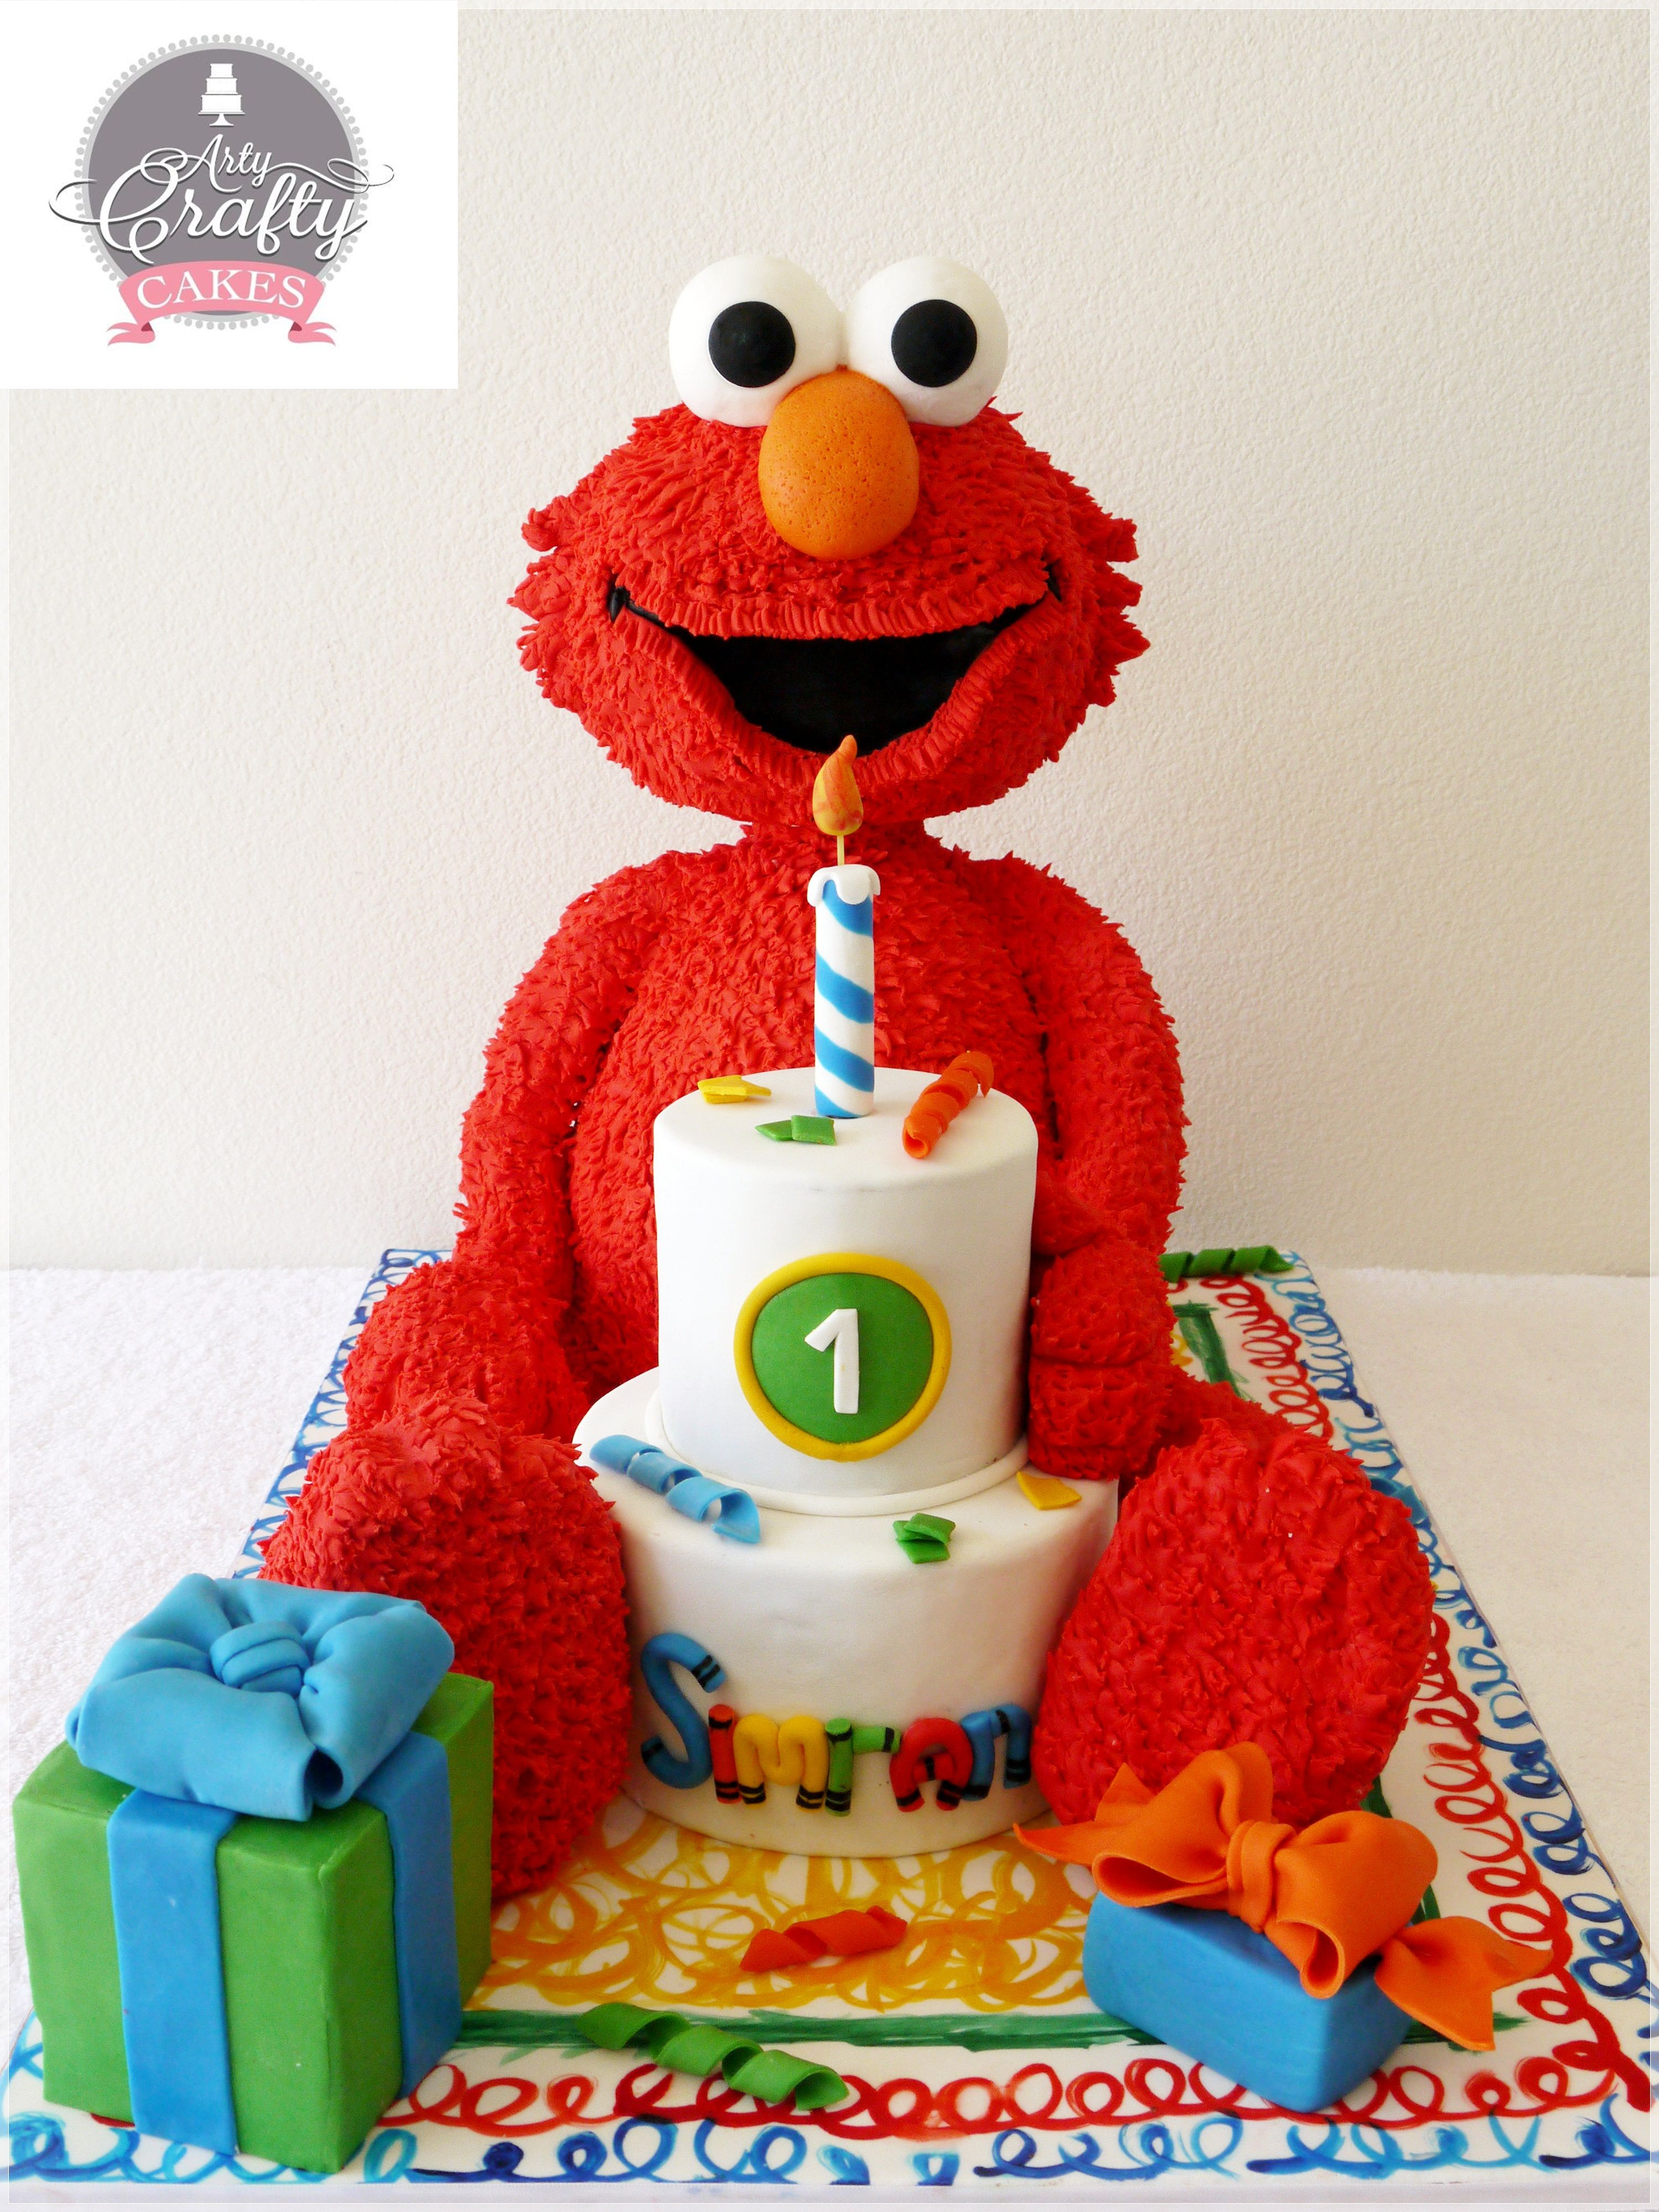 3D ELMO Carved Elmo Cake with a small tiered cake and a cake gift